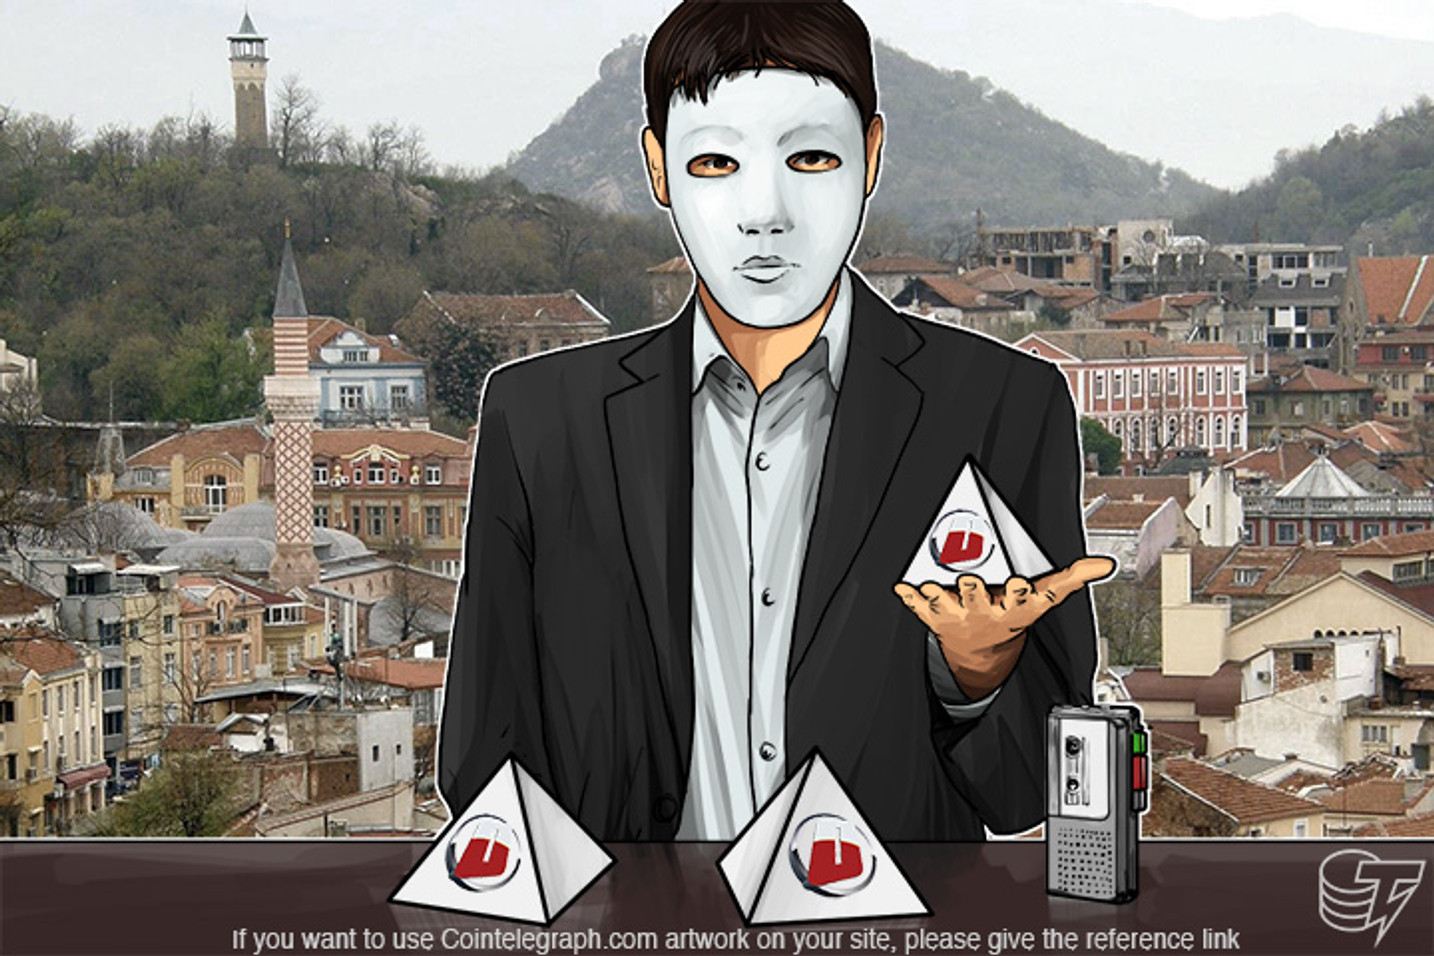 OneCoin: A Voice From Inside Hints To Underground Bulgarian Society